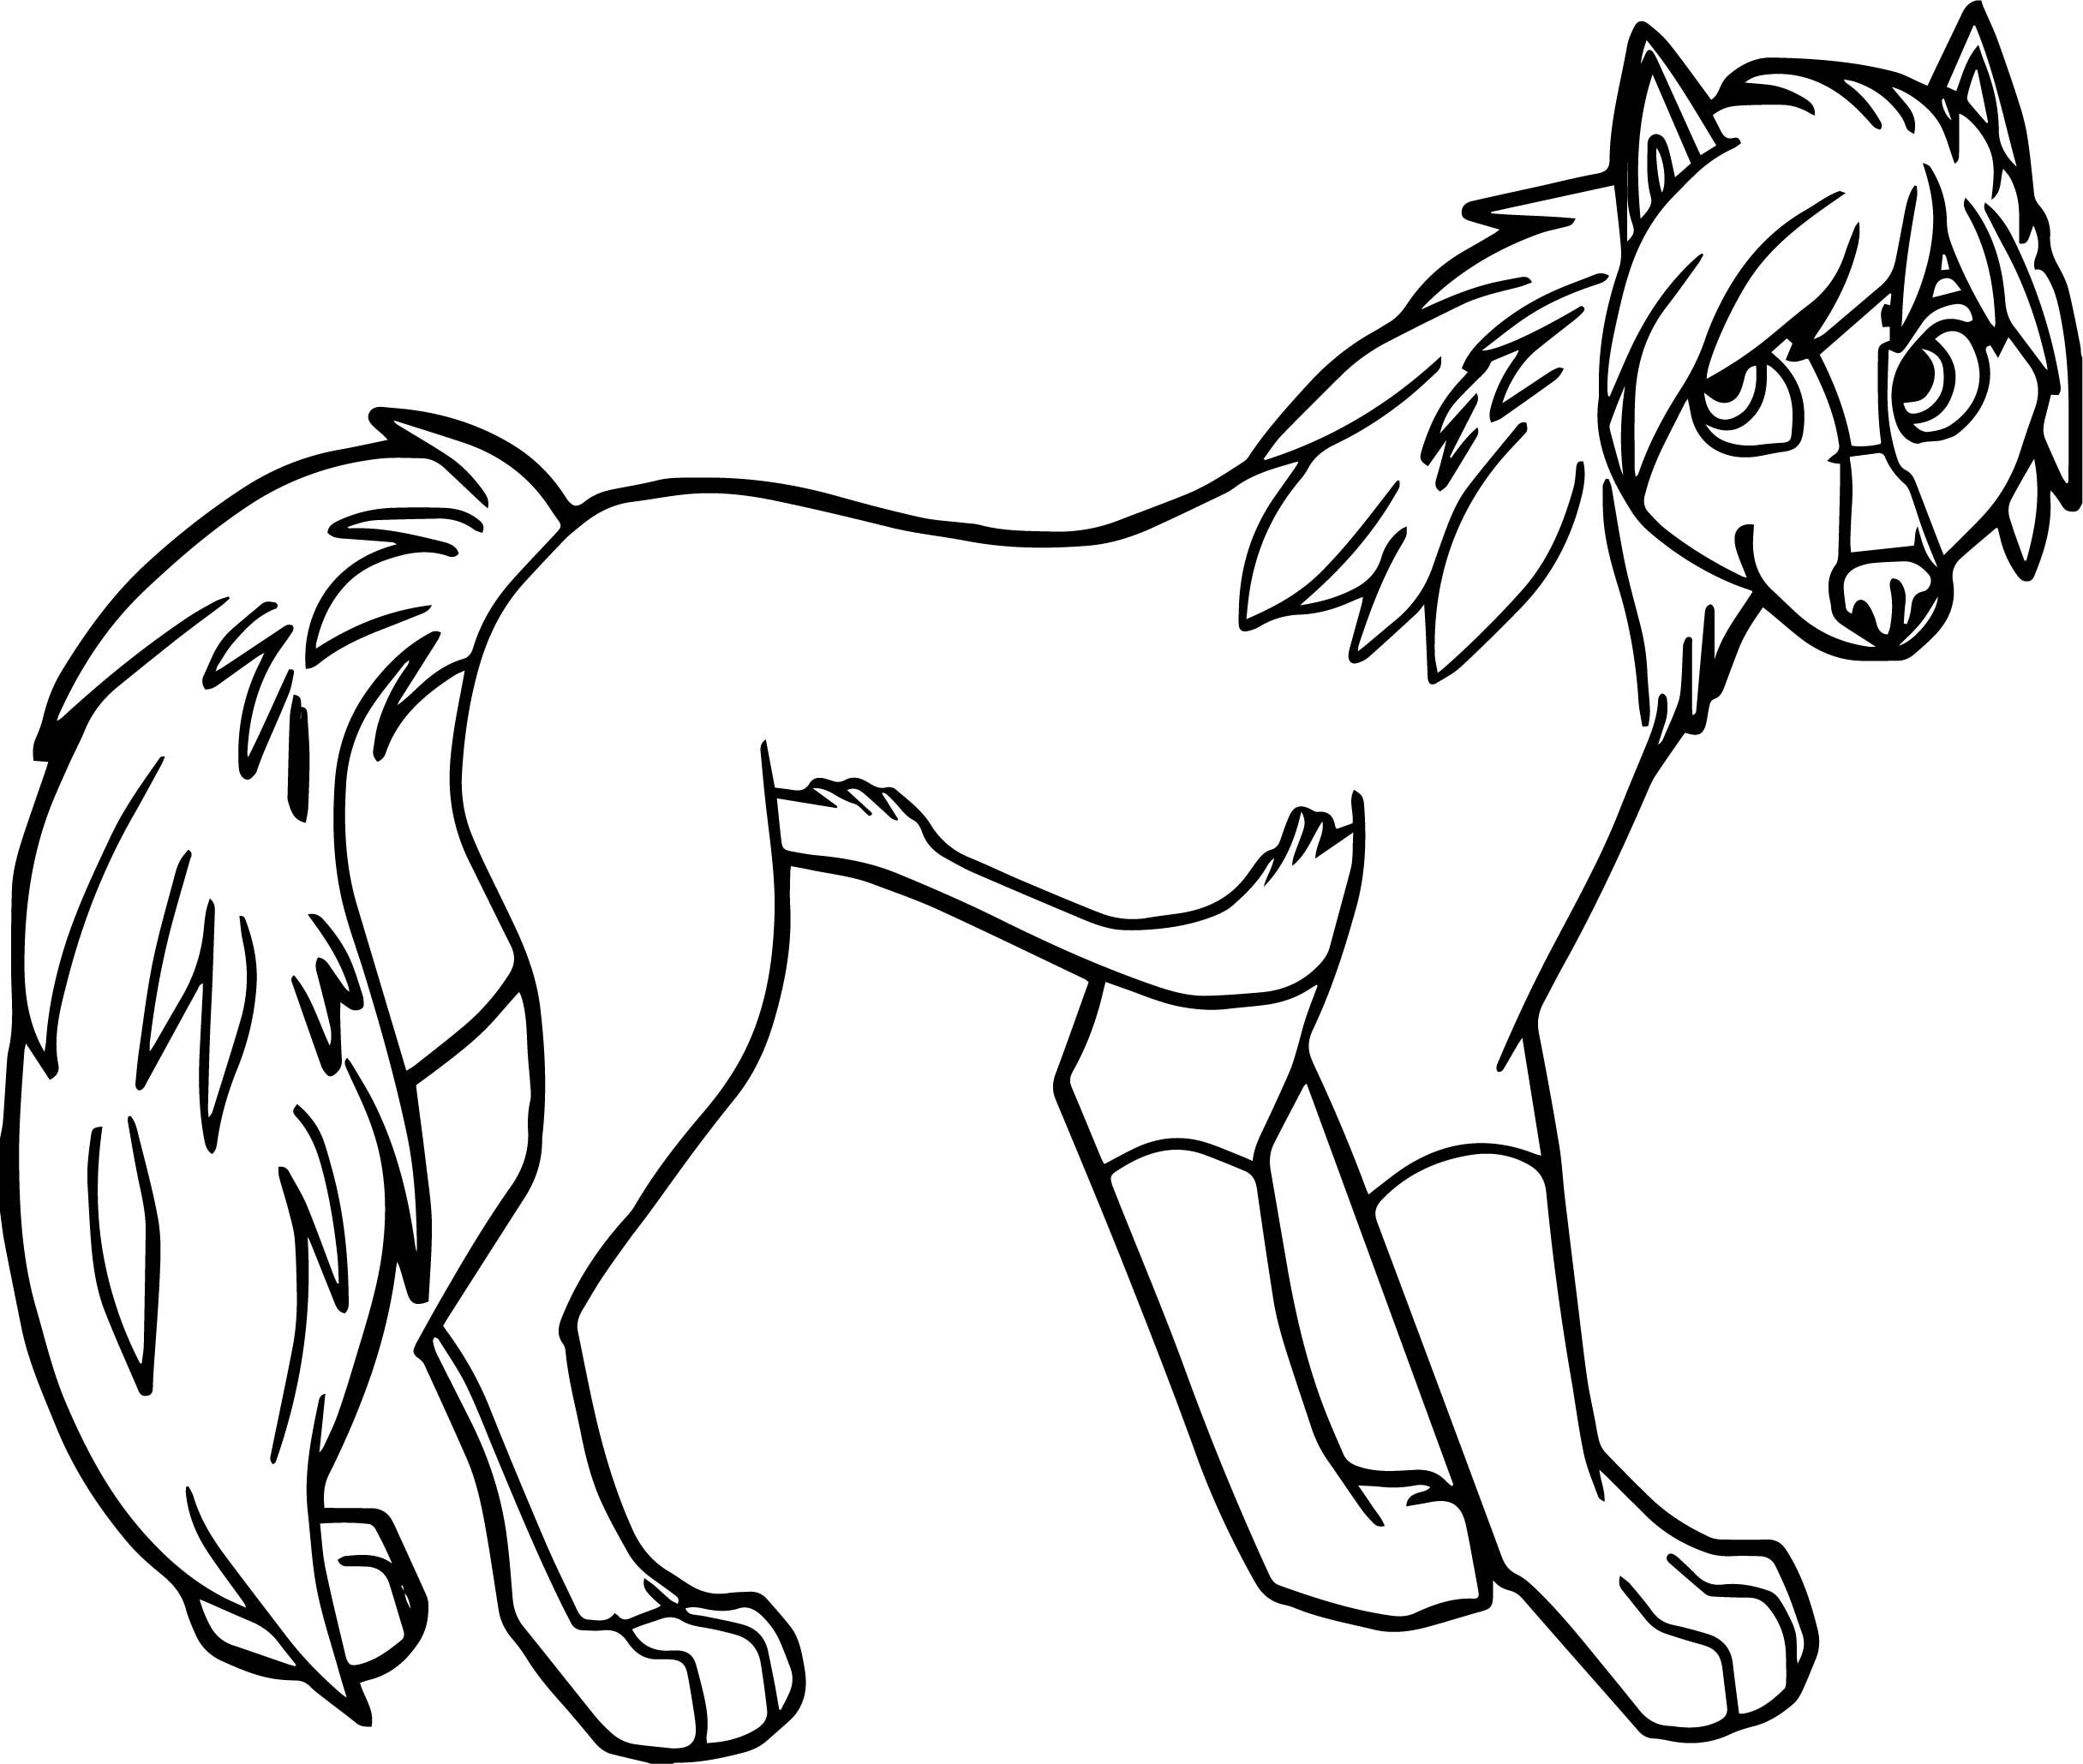 Unique Girl Wolf Coloring Pages Printable Collection to Print Of Wolf Coloring Pages Elegant Free Printable Wolf Coloring Pages for Download